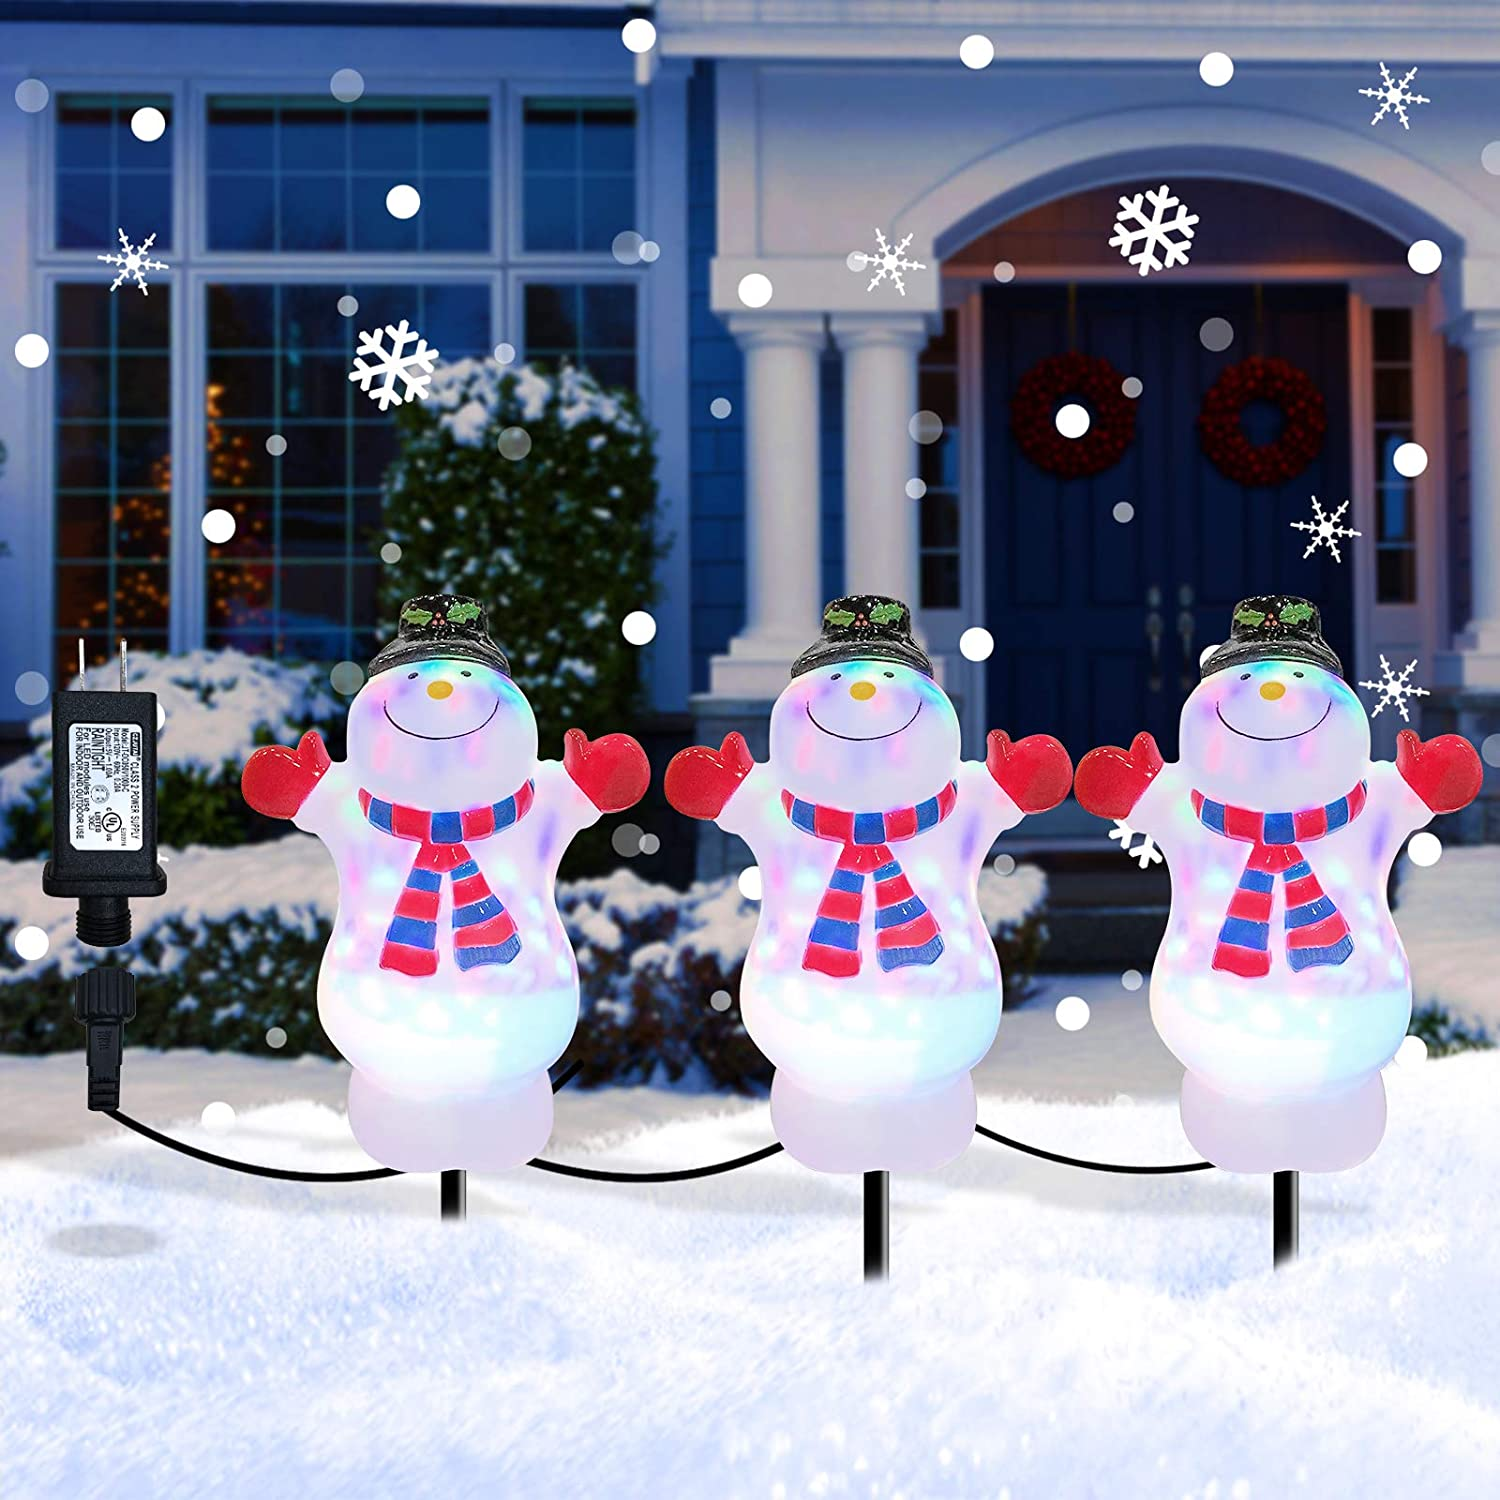 Christmas Decorations Snowman Pathway Light Outdoor, Waterproof Landscape Path Lights Decor 3 in 1 Outdoor Stake Decoration for Patio, Yard, Garden, Lawn Decoration